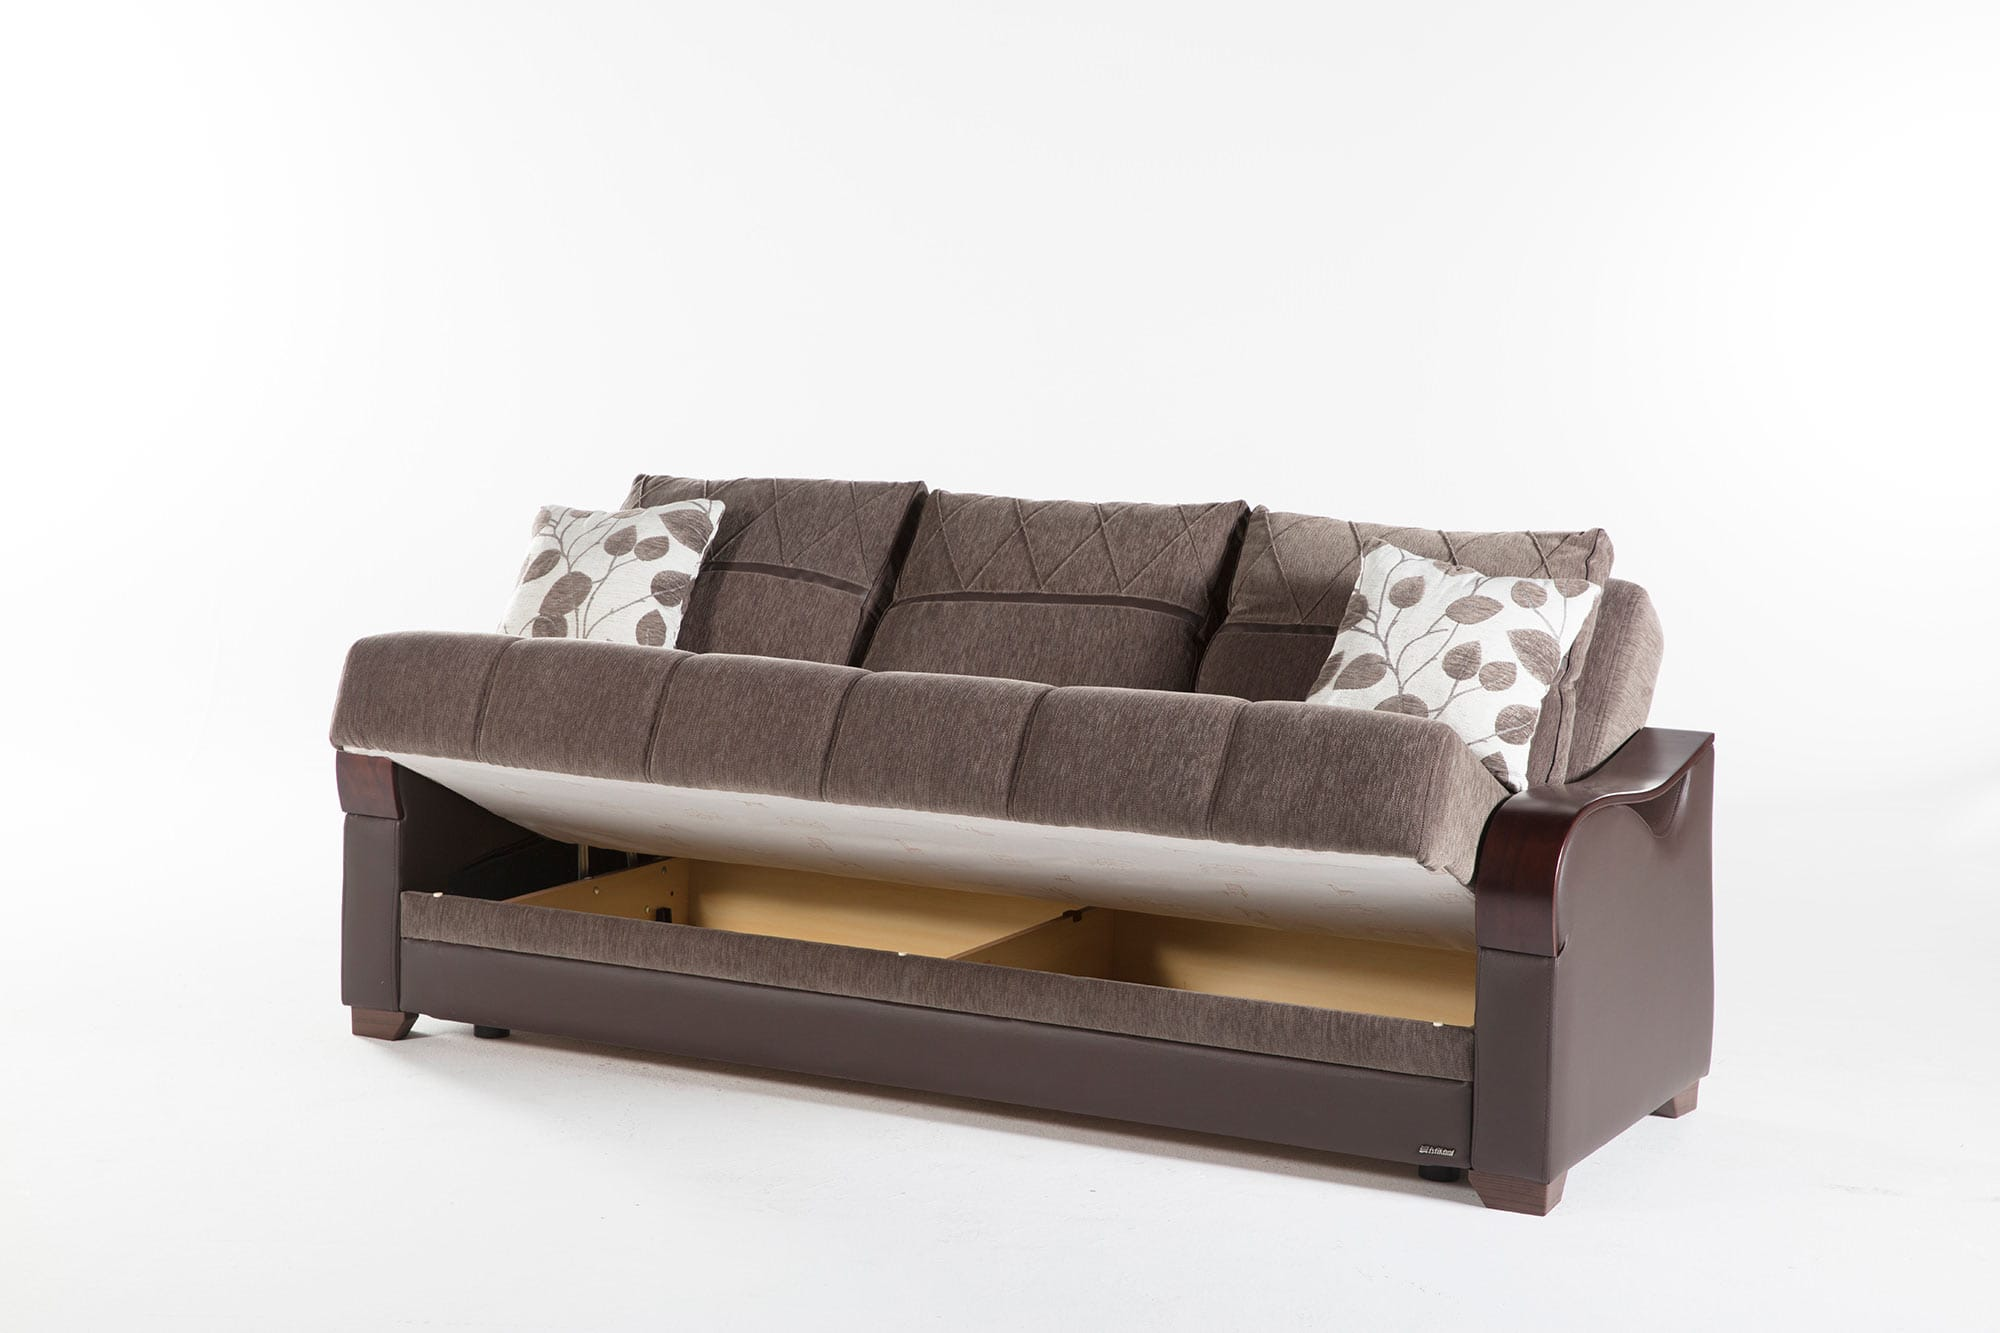 Bennett Armoni Brown Convertible Sofa Bed by Istikbal Furniture